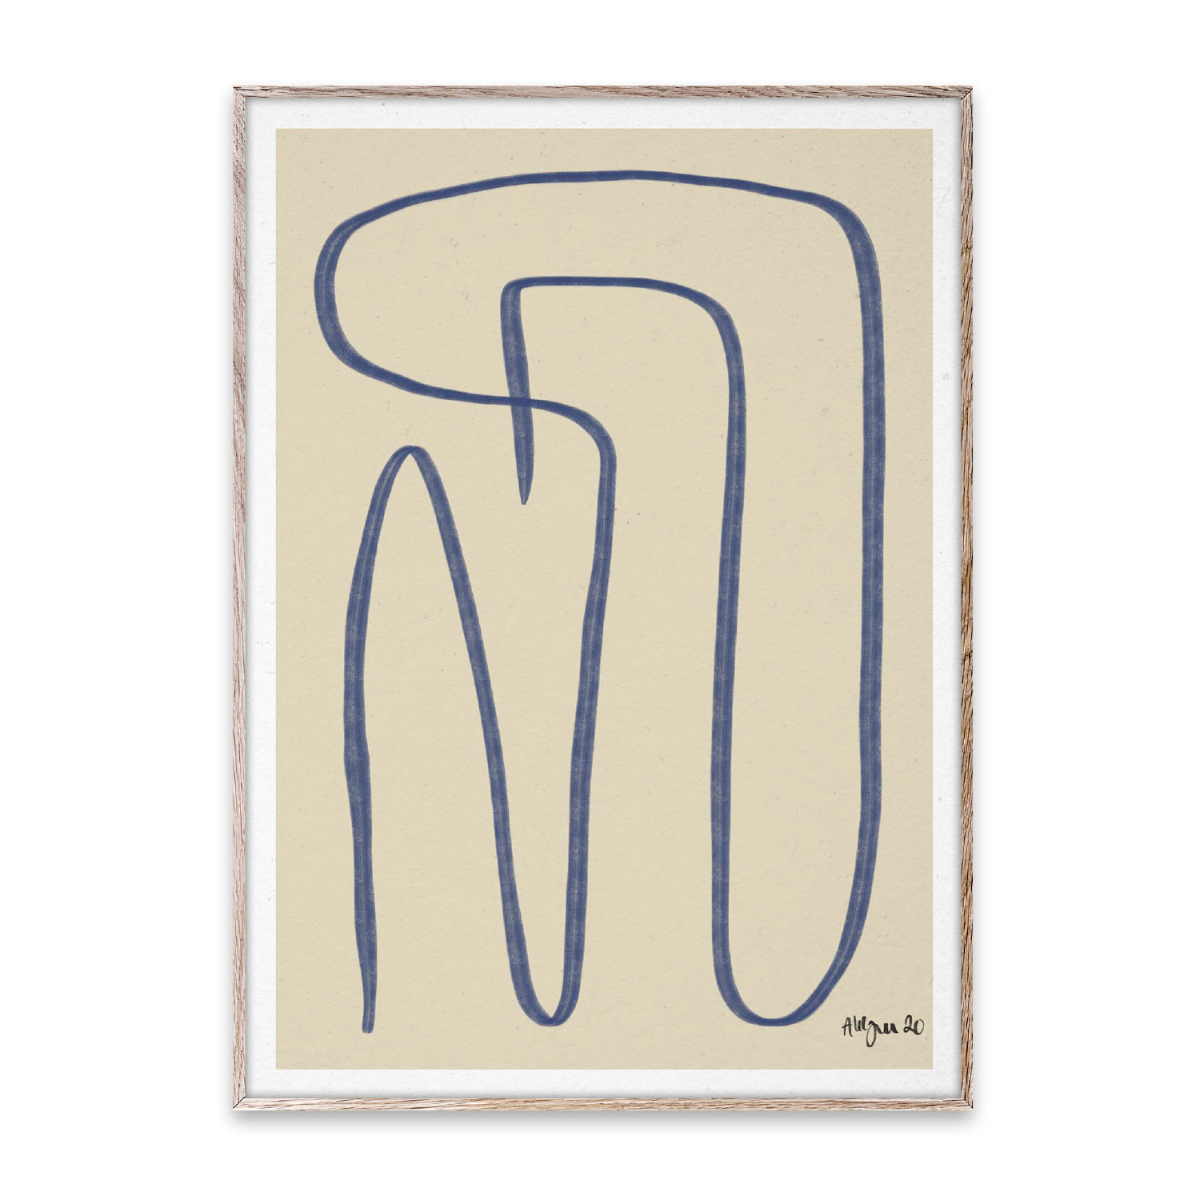 Paper Collective Poster Different Ways - Blue 30x40 cm